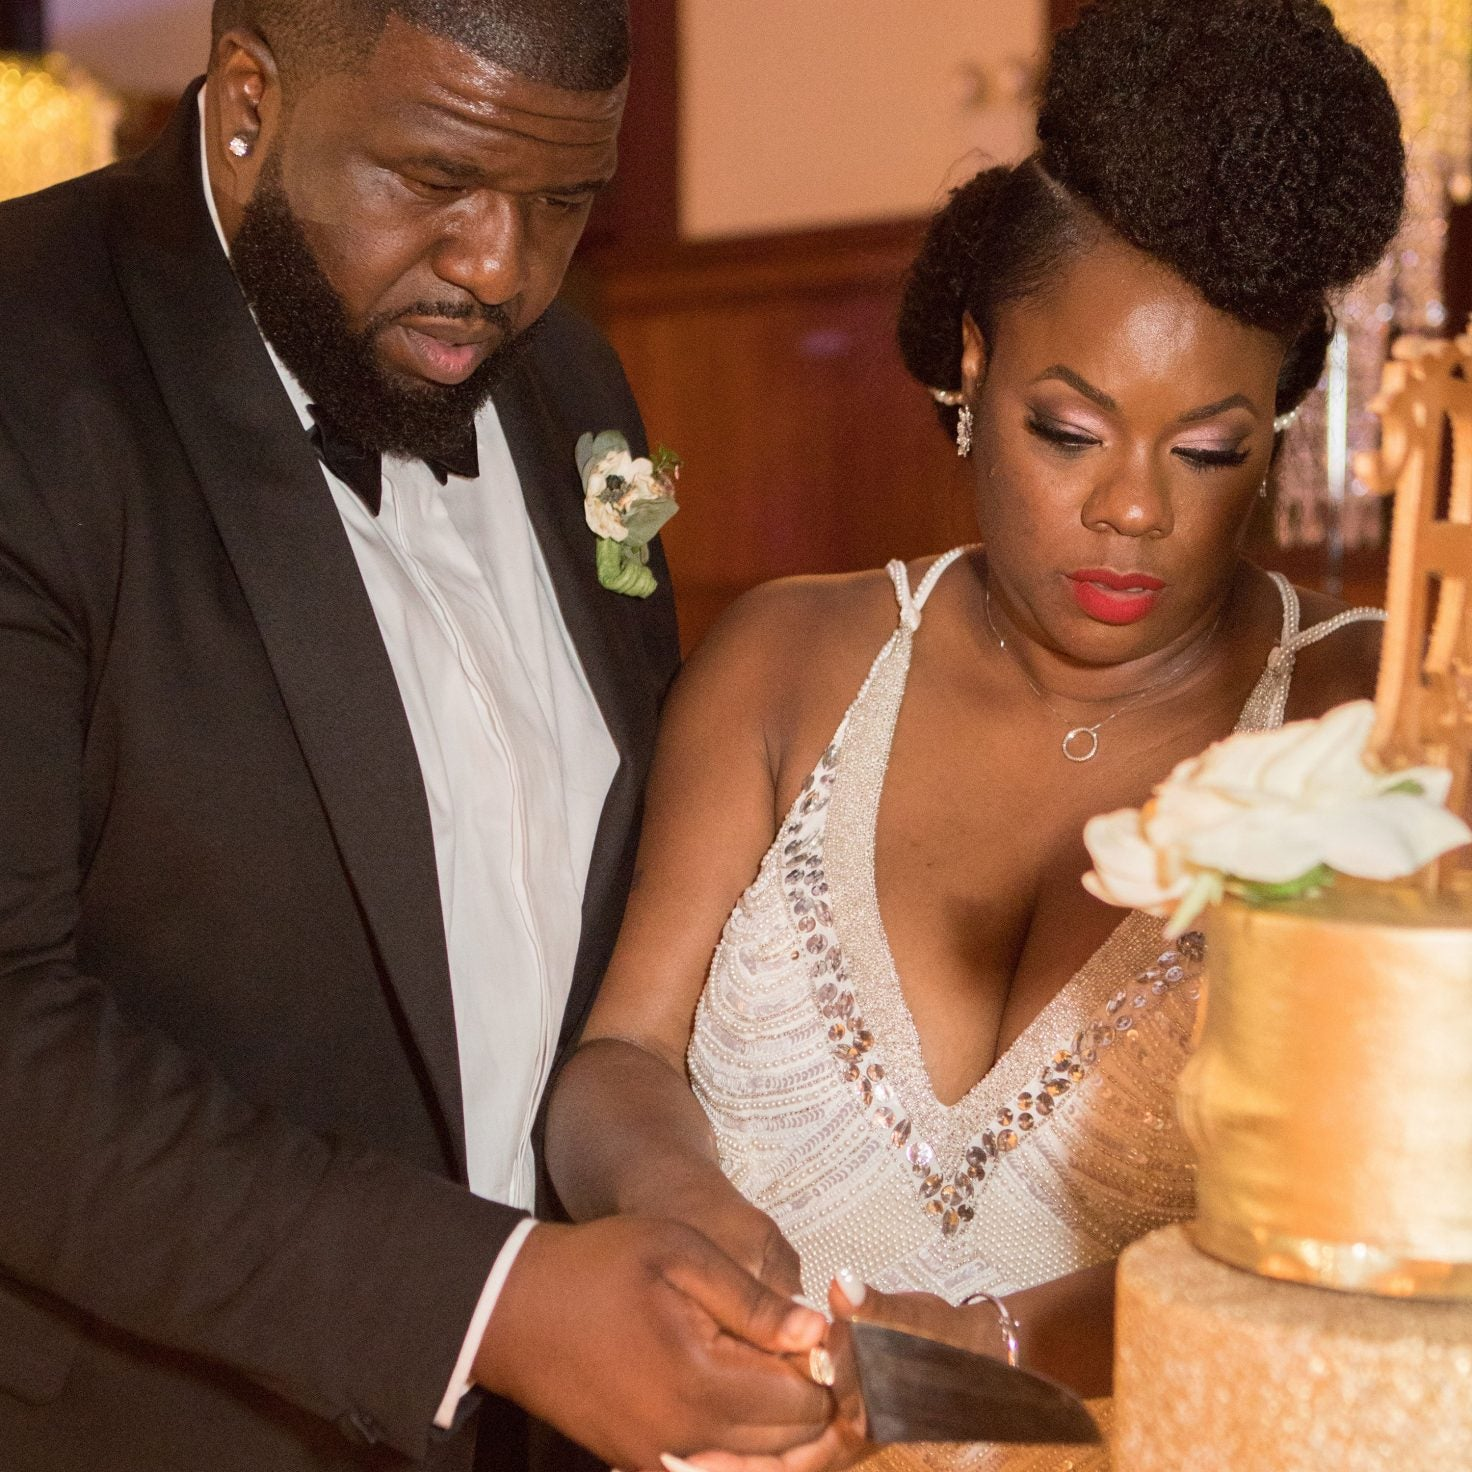 Bridal Bliss: A Round of Applause For Tuwisha and Harold's Renaissance Wedding Day